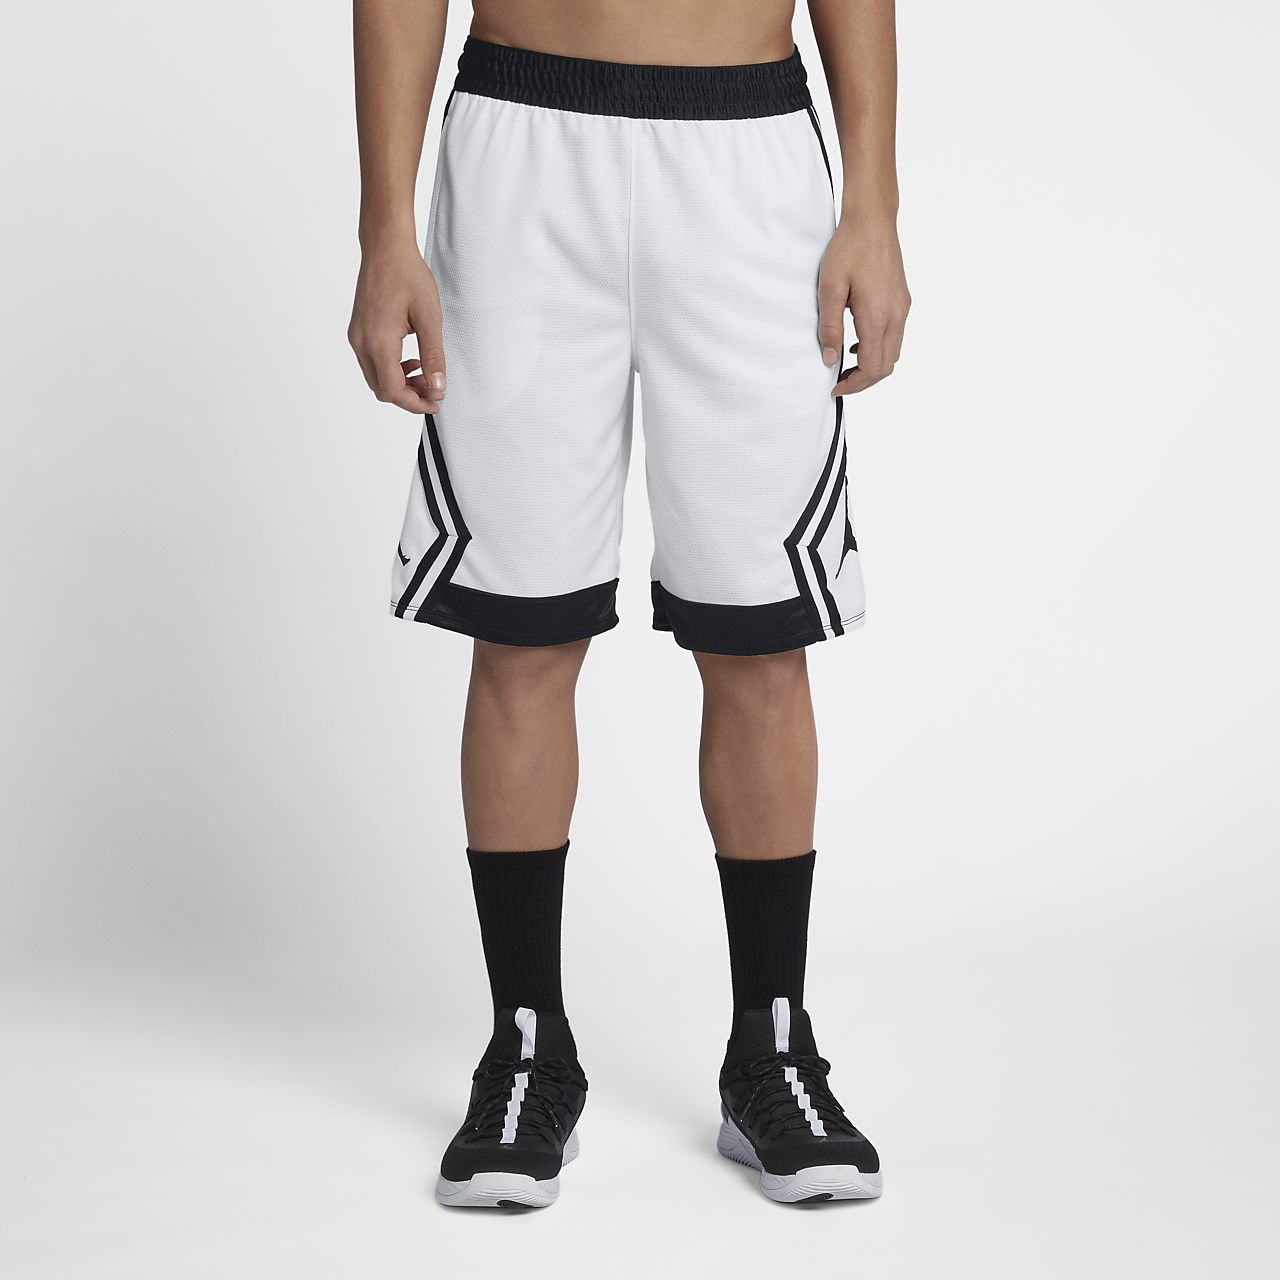 ... Jordan Rise Diamond Men's Basketball Shorts